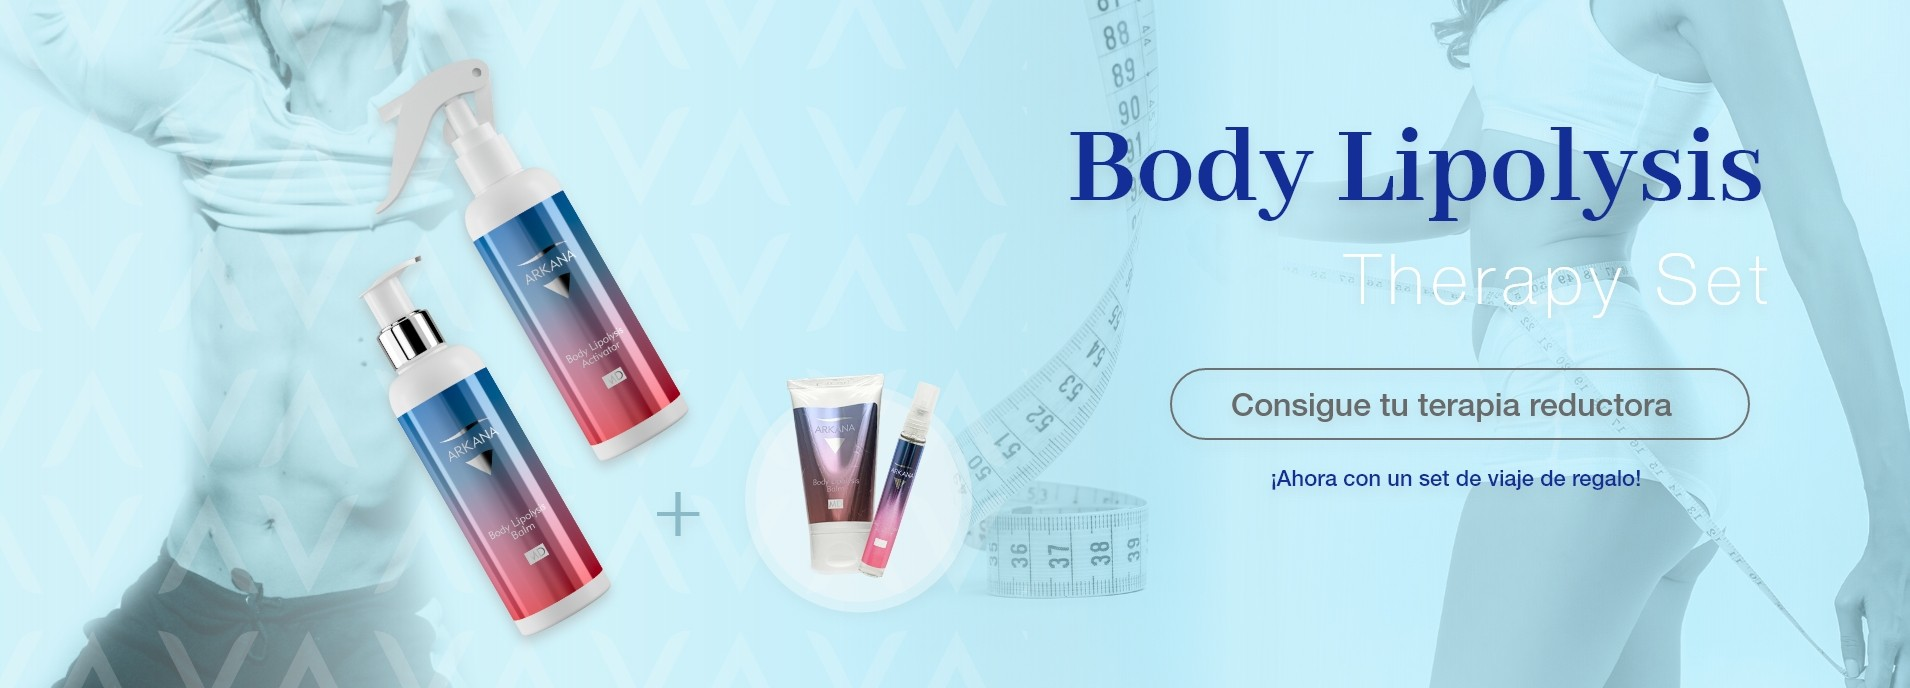 BodyLipolysisTherapySet